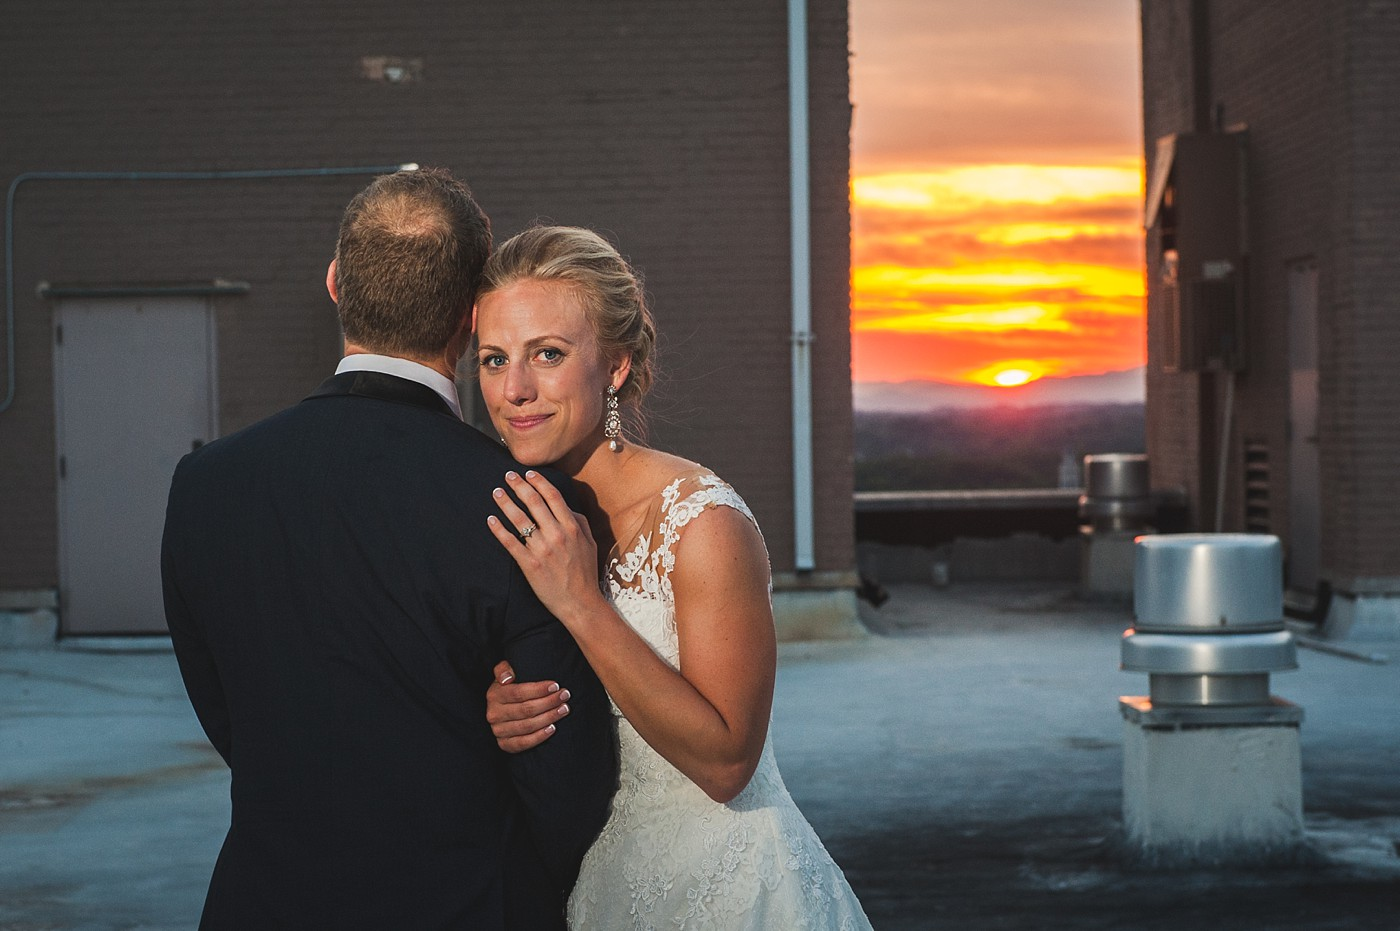 indianapolis-wedding-photographers_0691.jpg